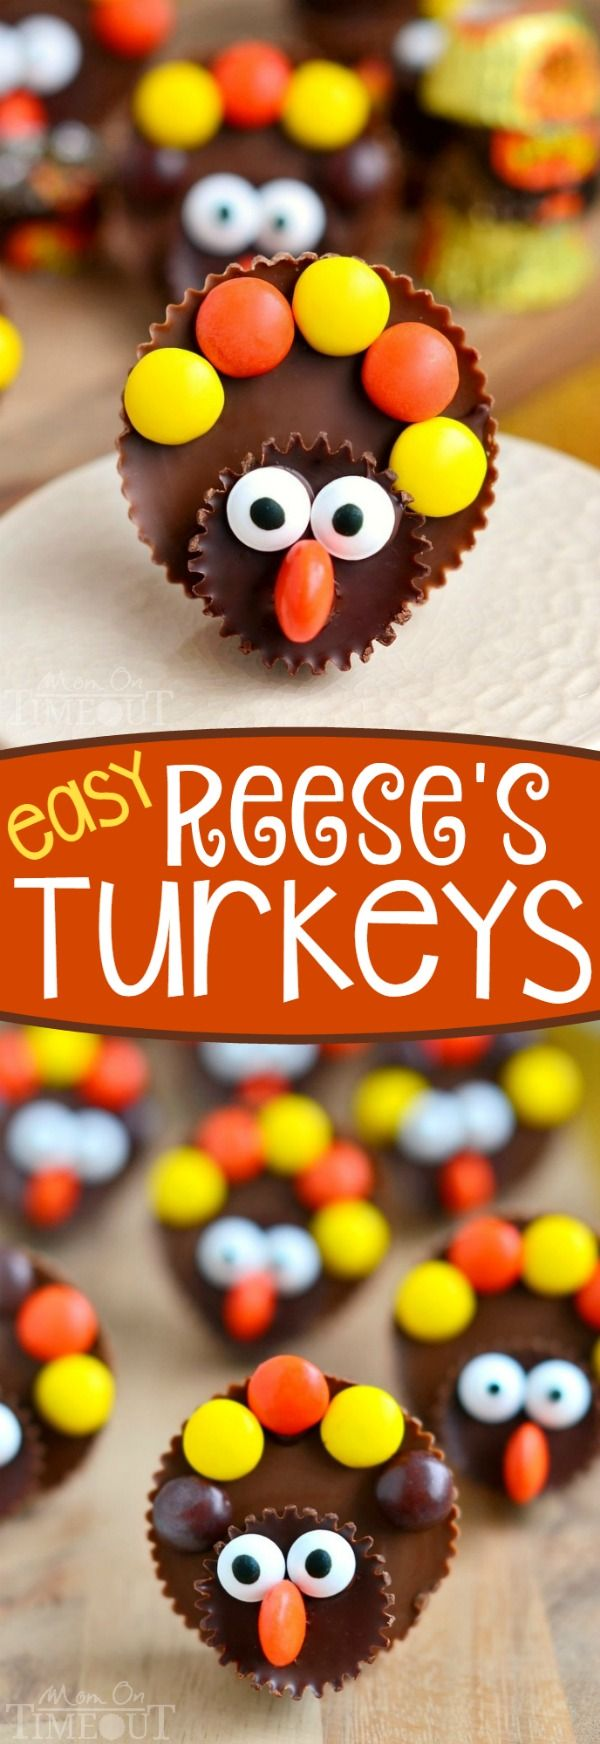 Calling all Reese's lovers! Look no further for the perfect Thanksgiving treat with these completely adorable Reese's Turkeys! Super easy to make and sure to please the chocolate and peanut butter lovers in your life!: